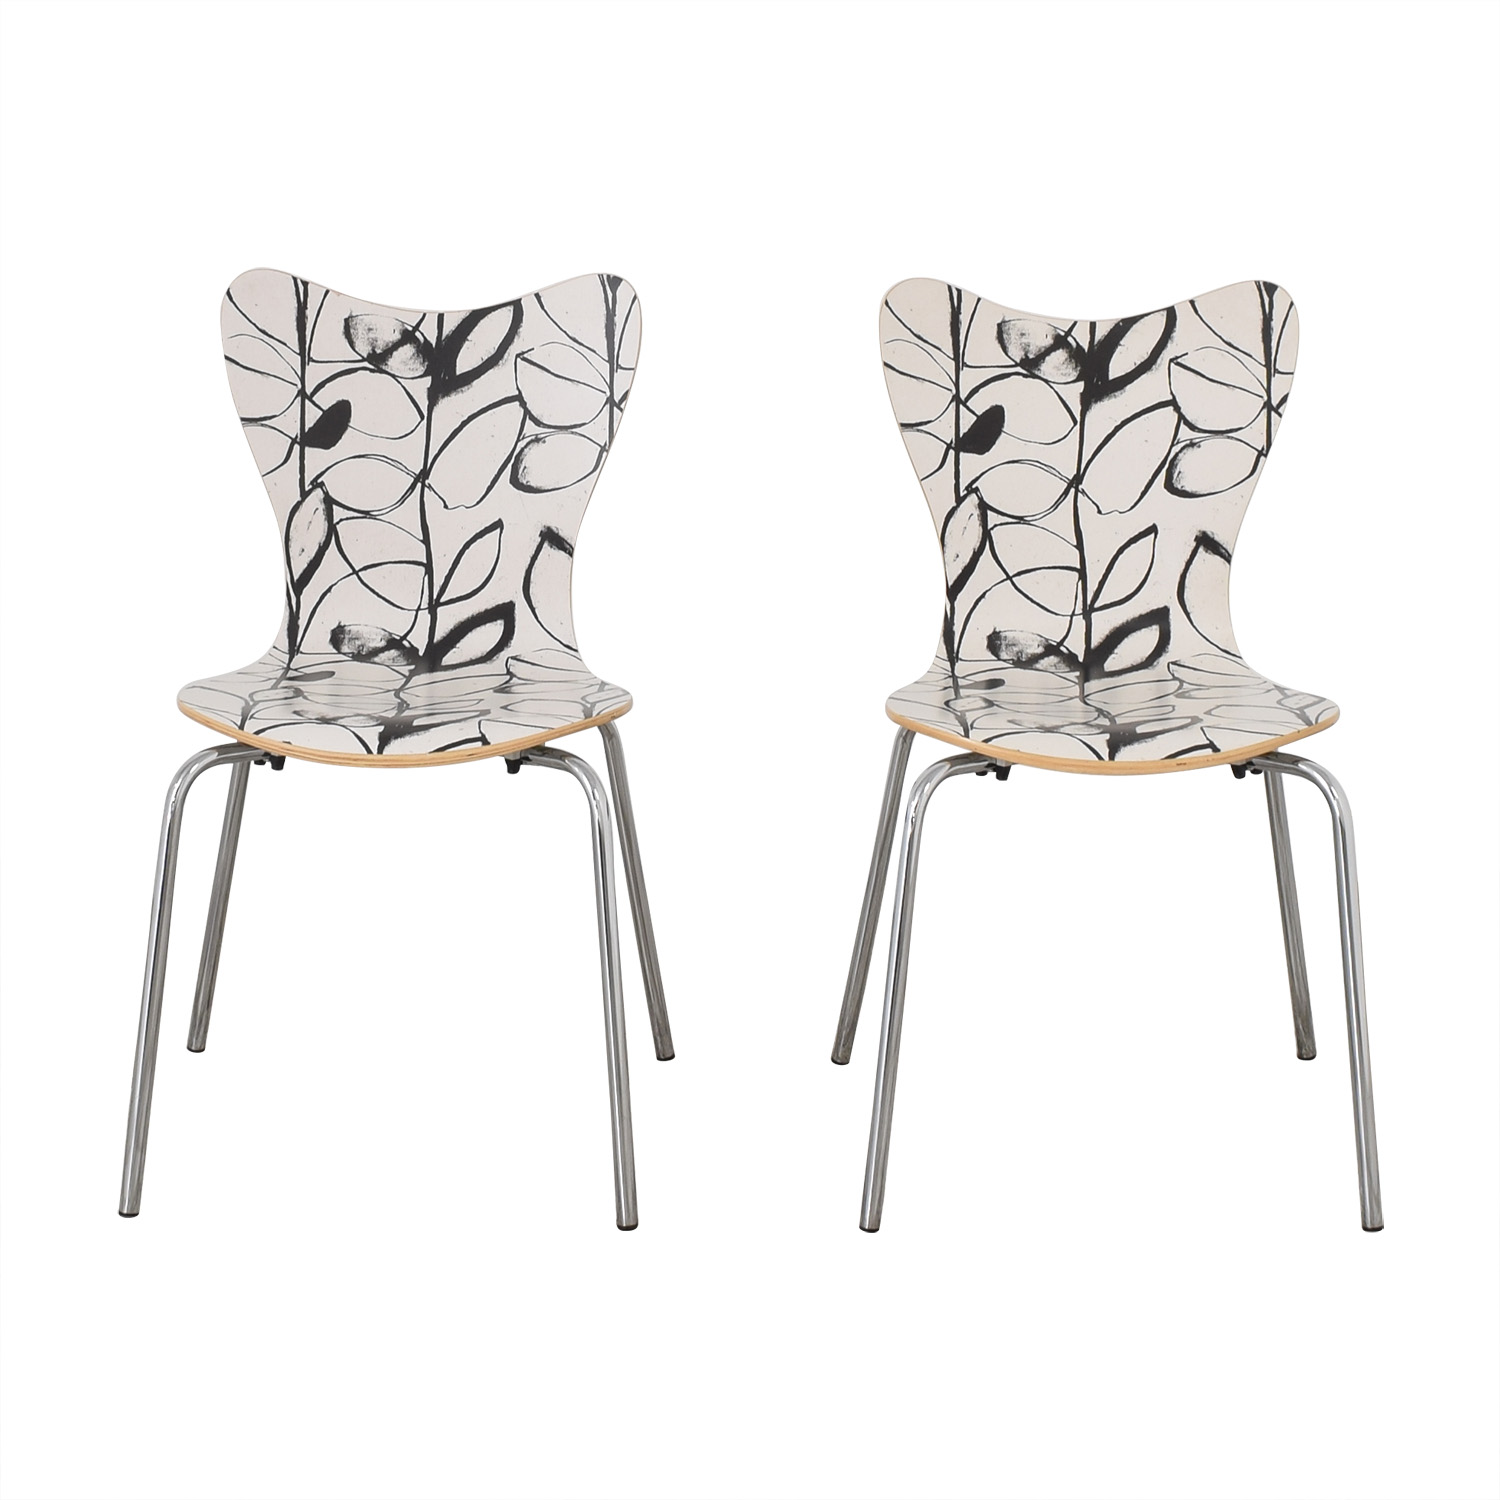 West Elm West Elm Decorative Dining Chairs black and white